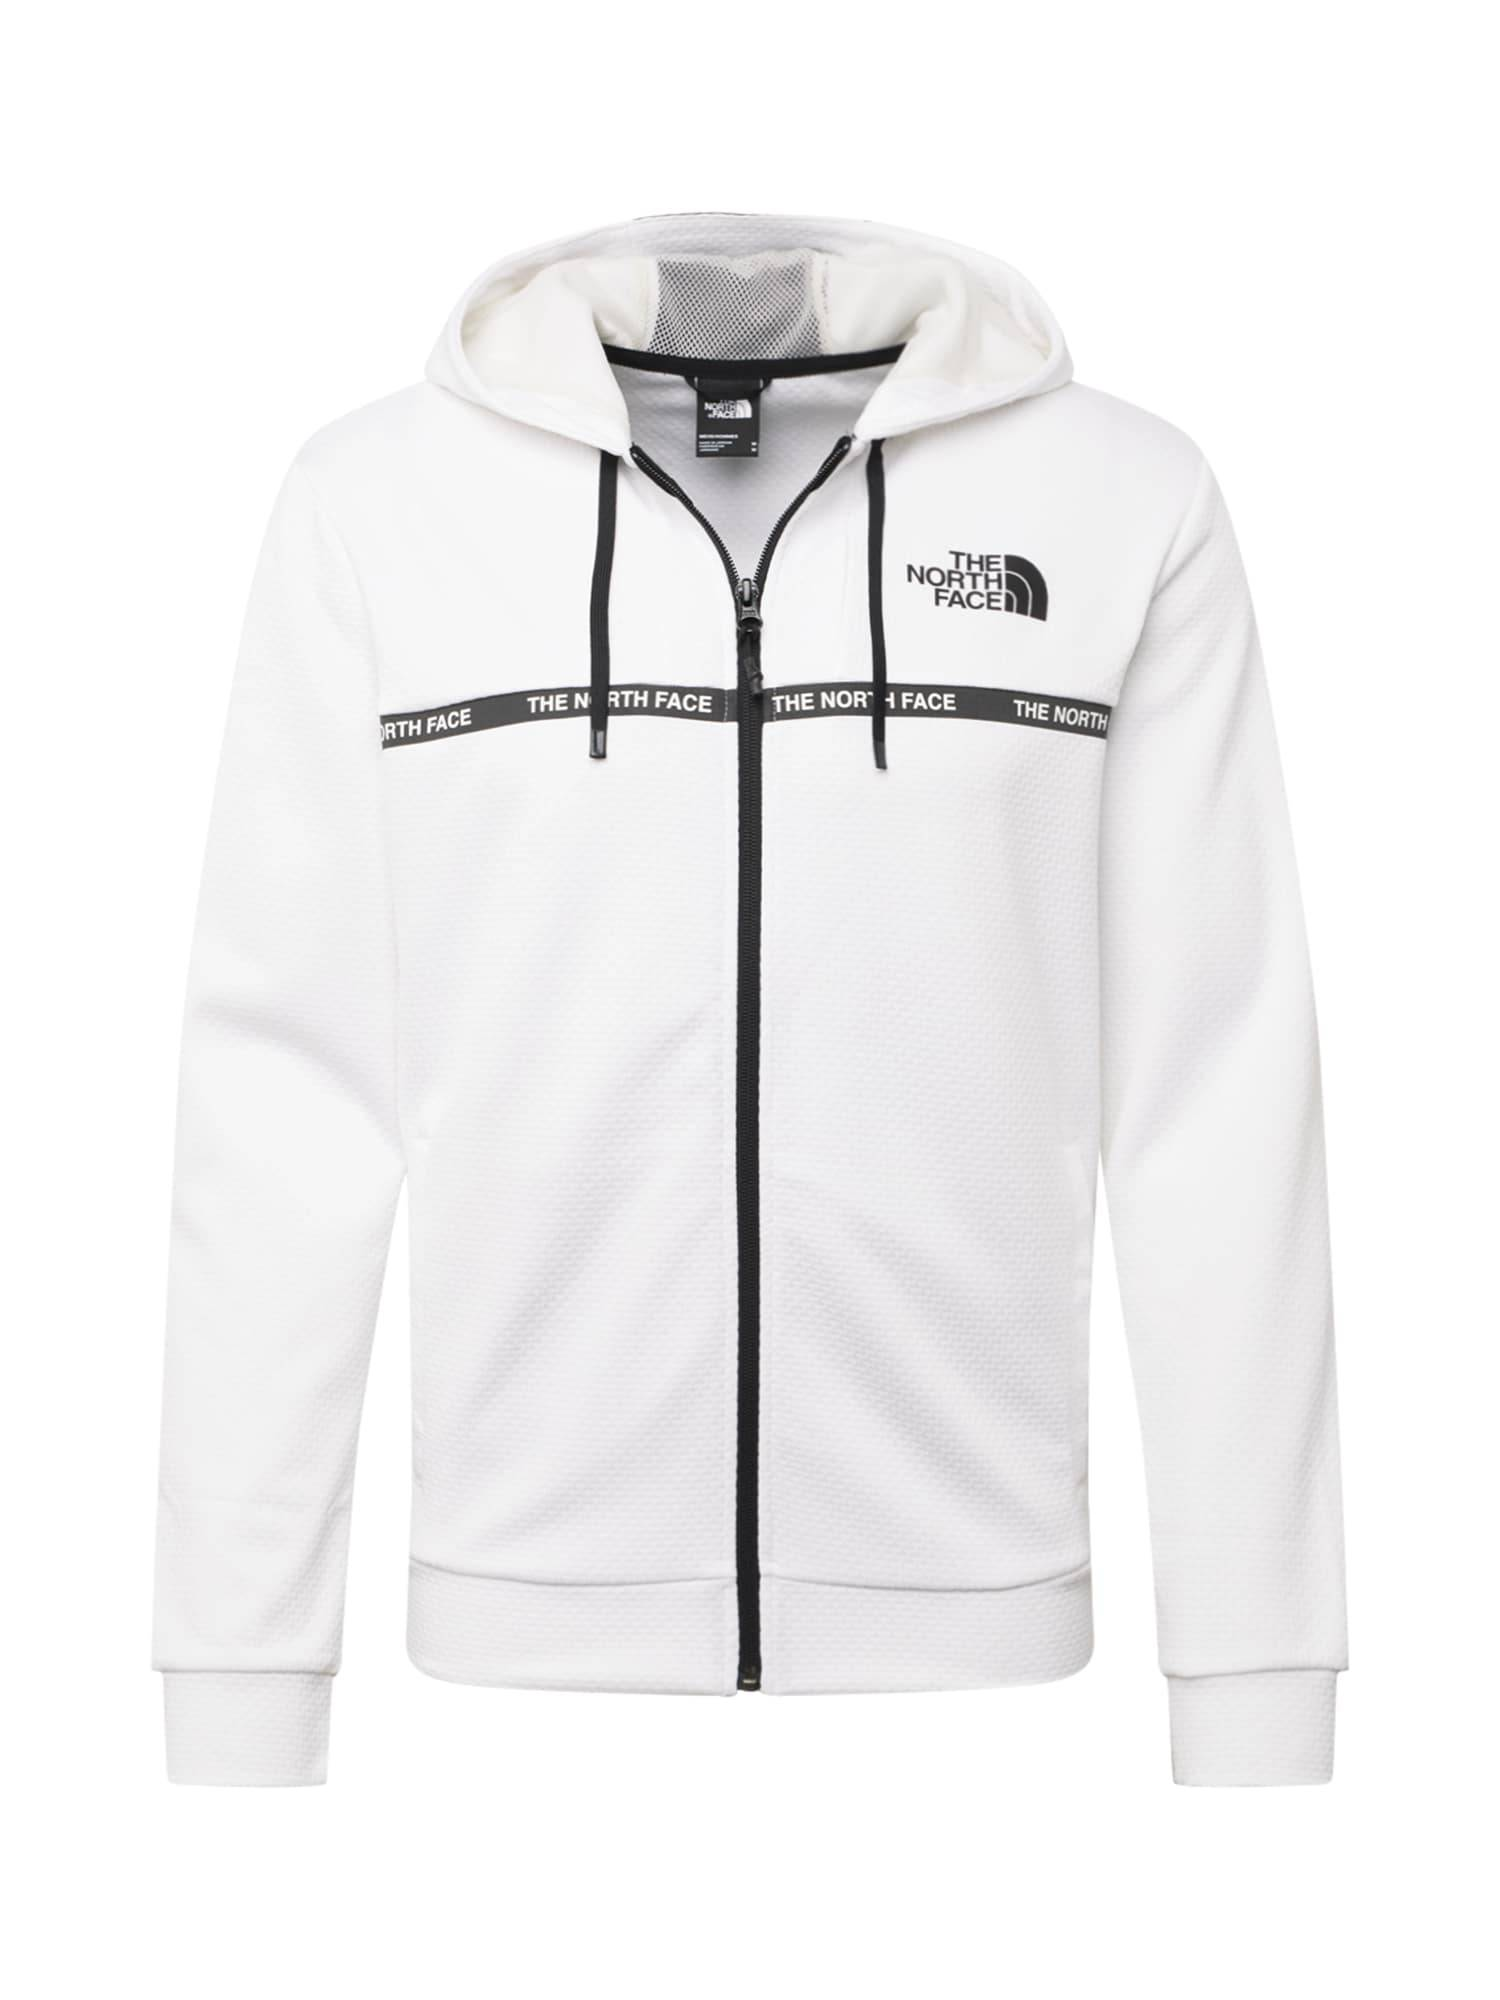 THE NORTH FACE Veste fonctionnelle 'Train'  - Blanc - Taille: S - male